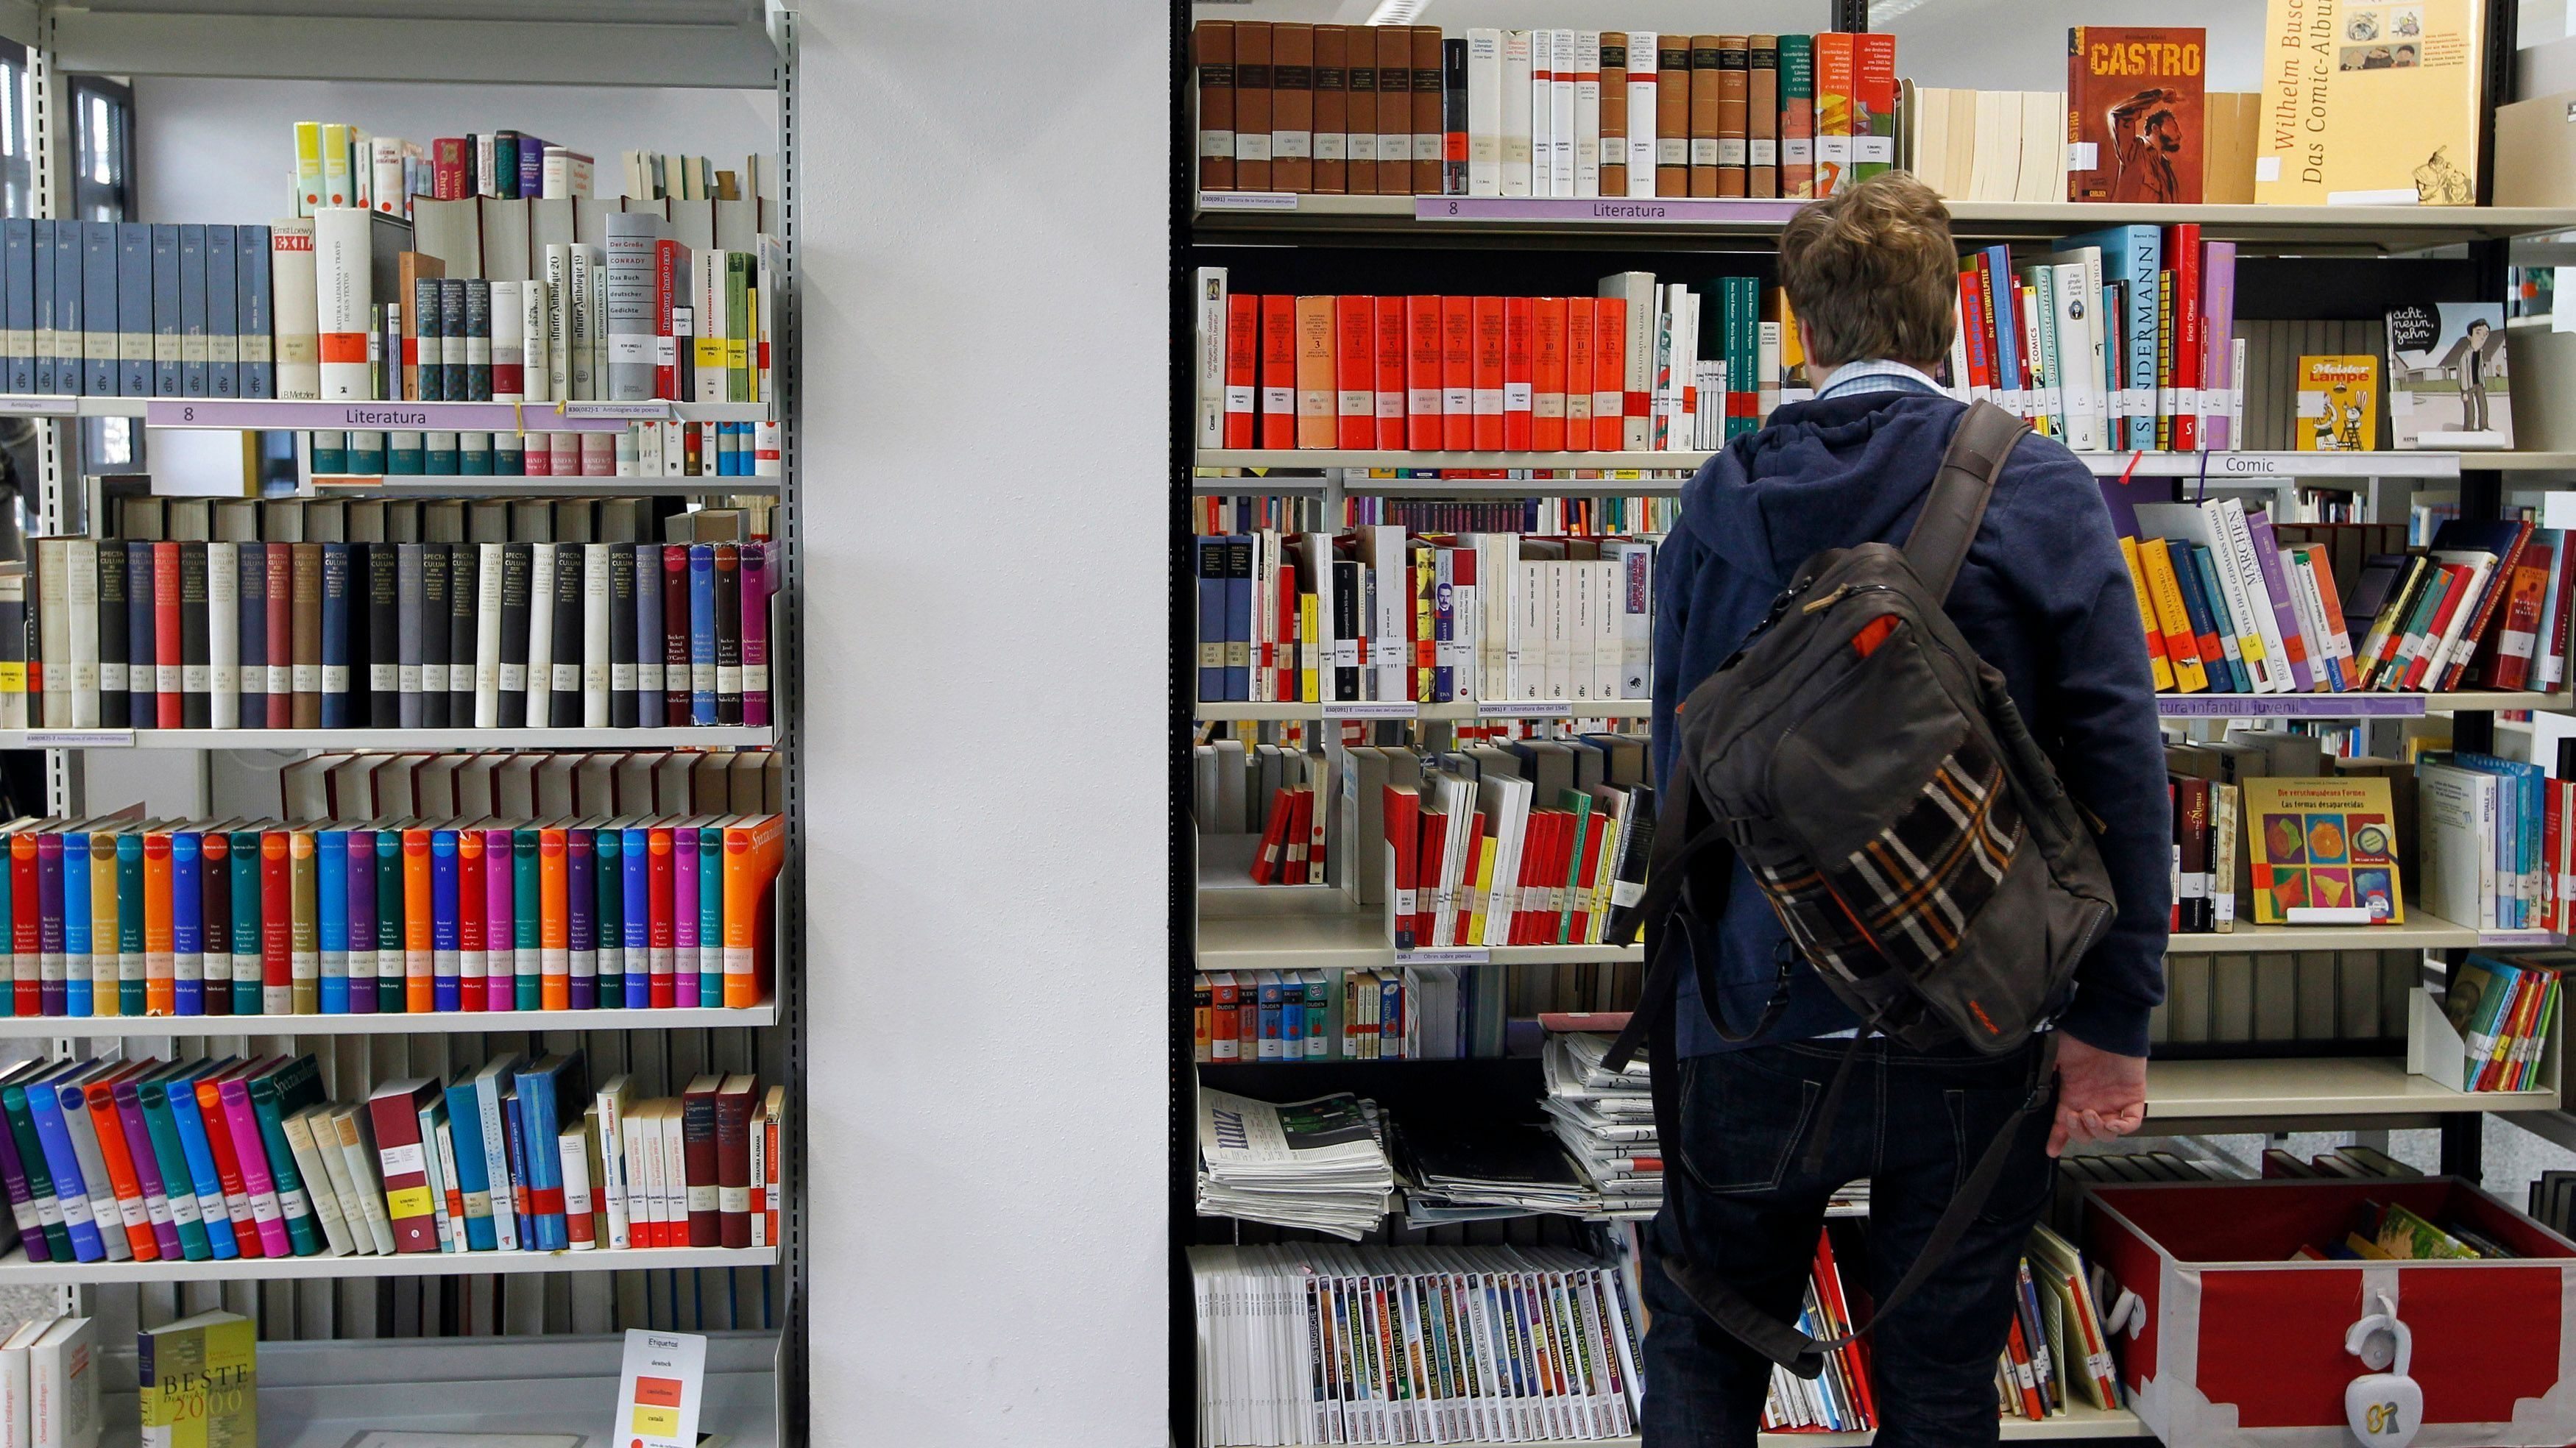 Why Spanish translations of literary works are censored, often without readers' knowledge